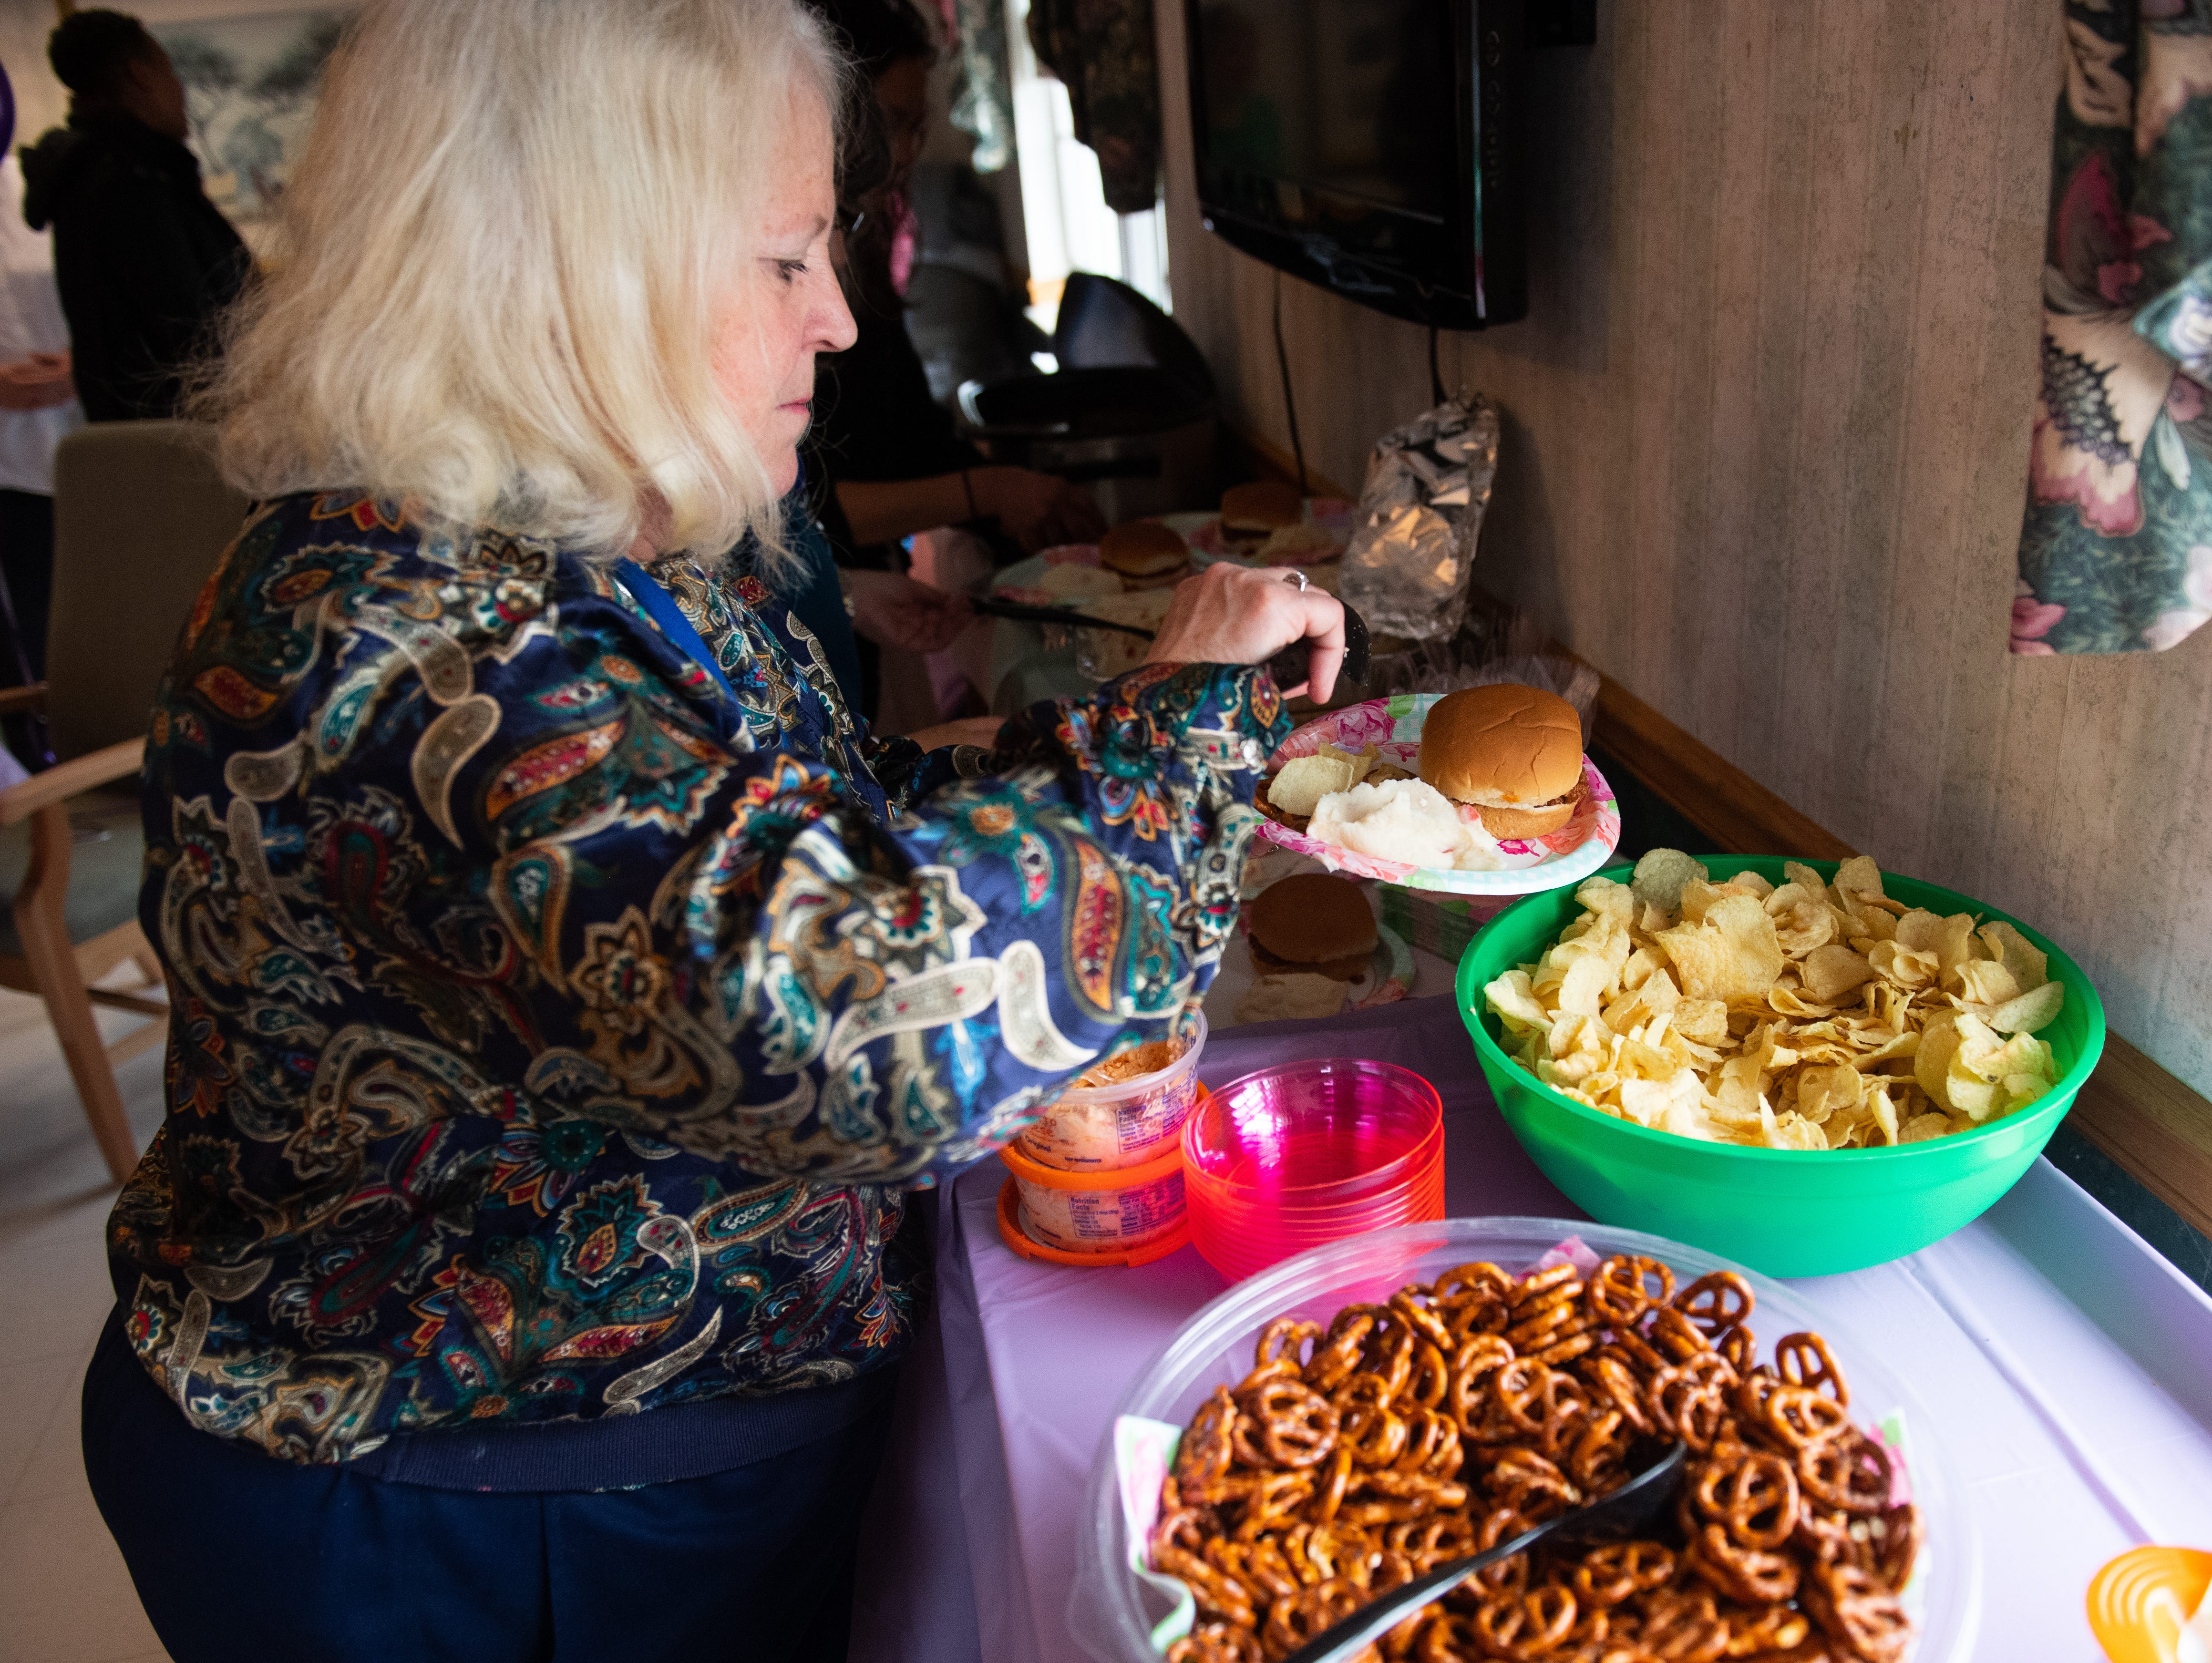 Sloppy Joe's, mashed potatoes, palmetto cheese, punch and much more made sure everyone at the wedding anniversary left with full stomaches, April 5, 2019.